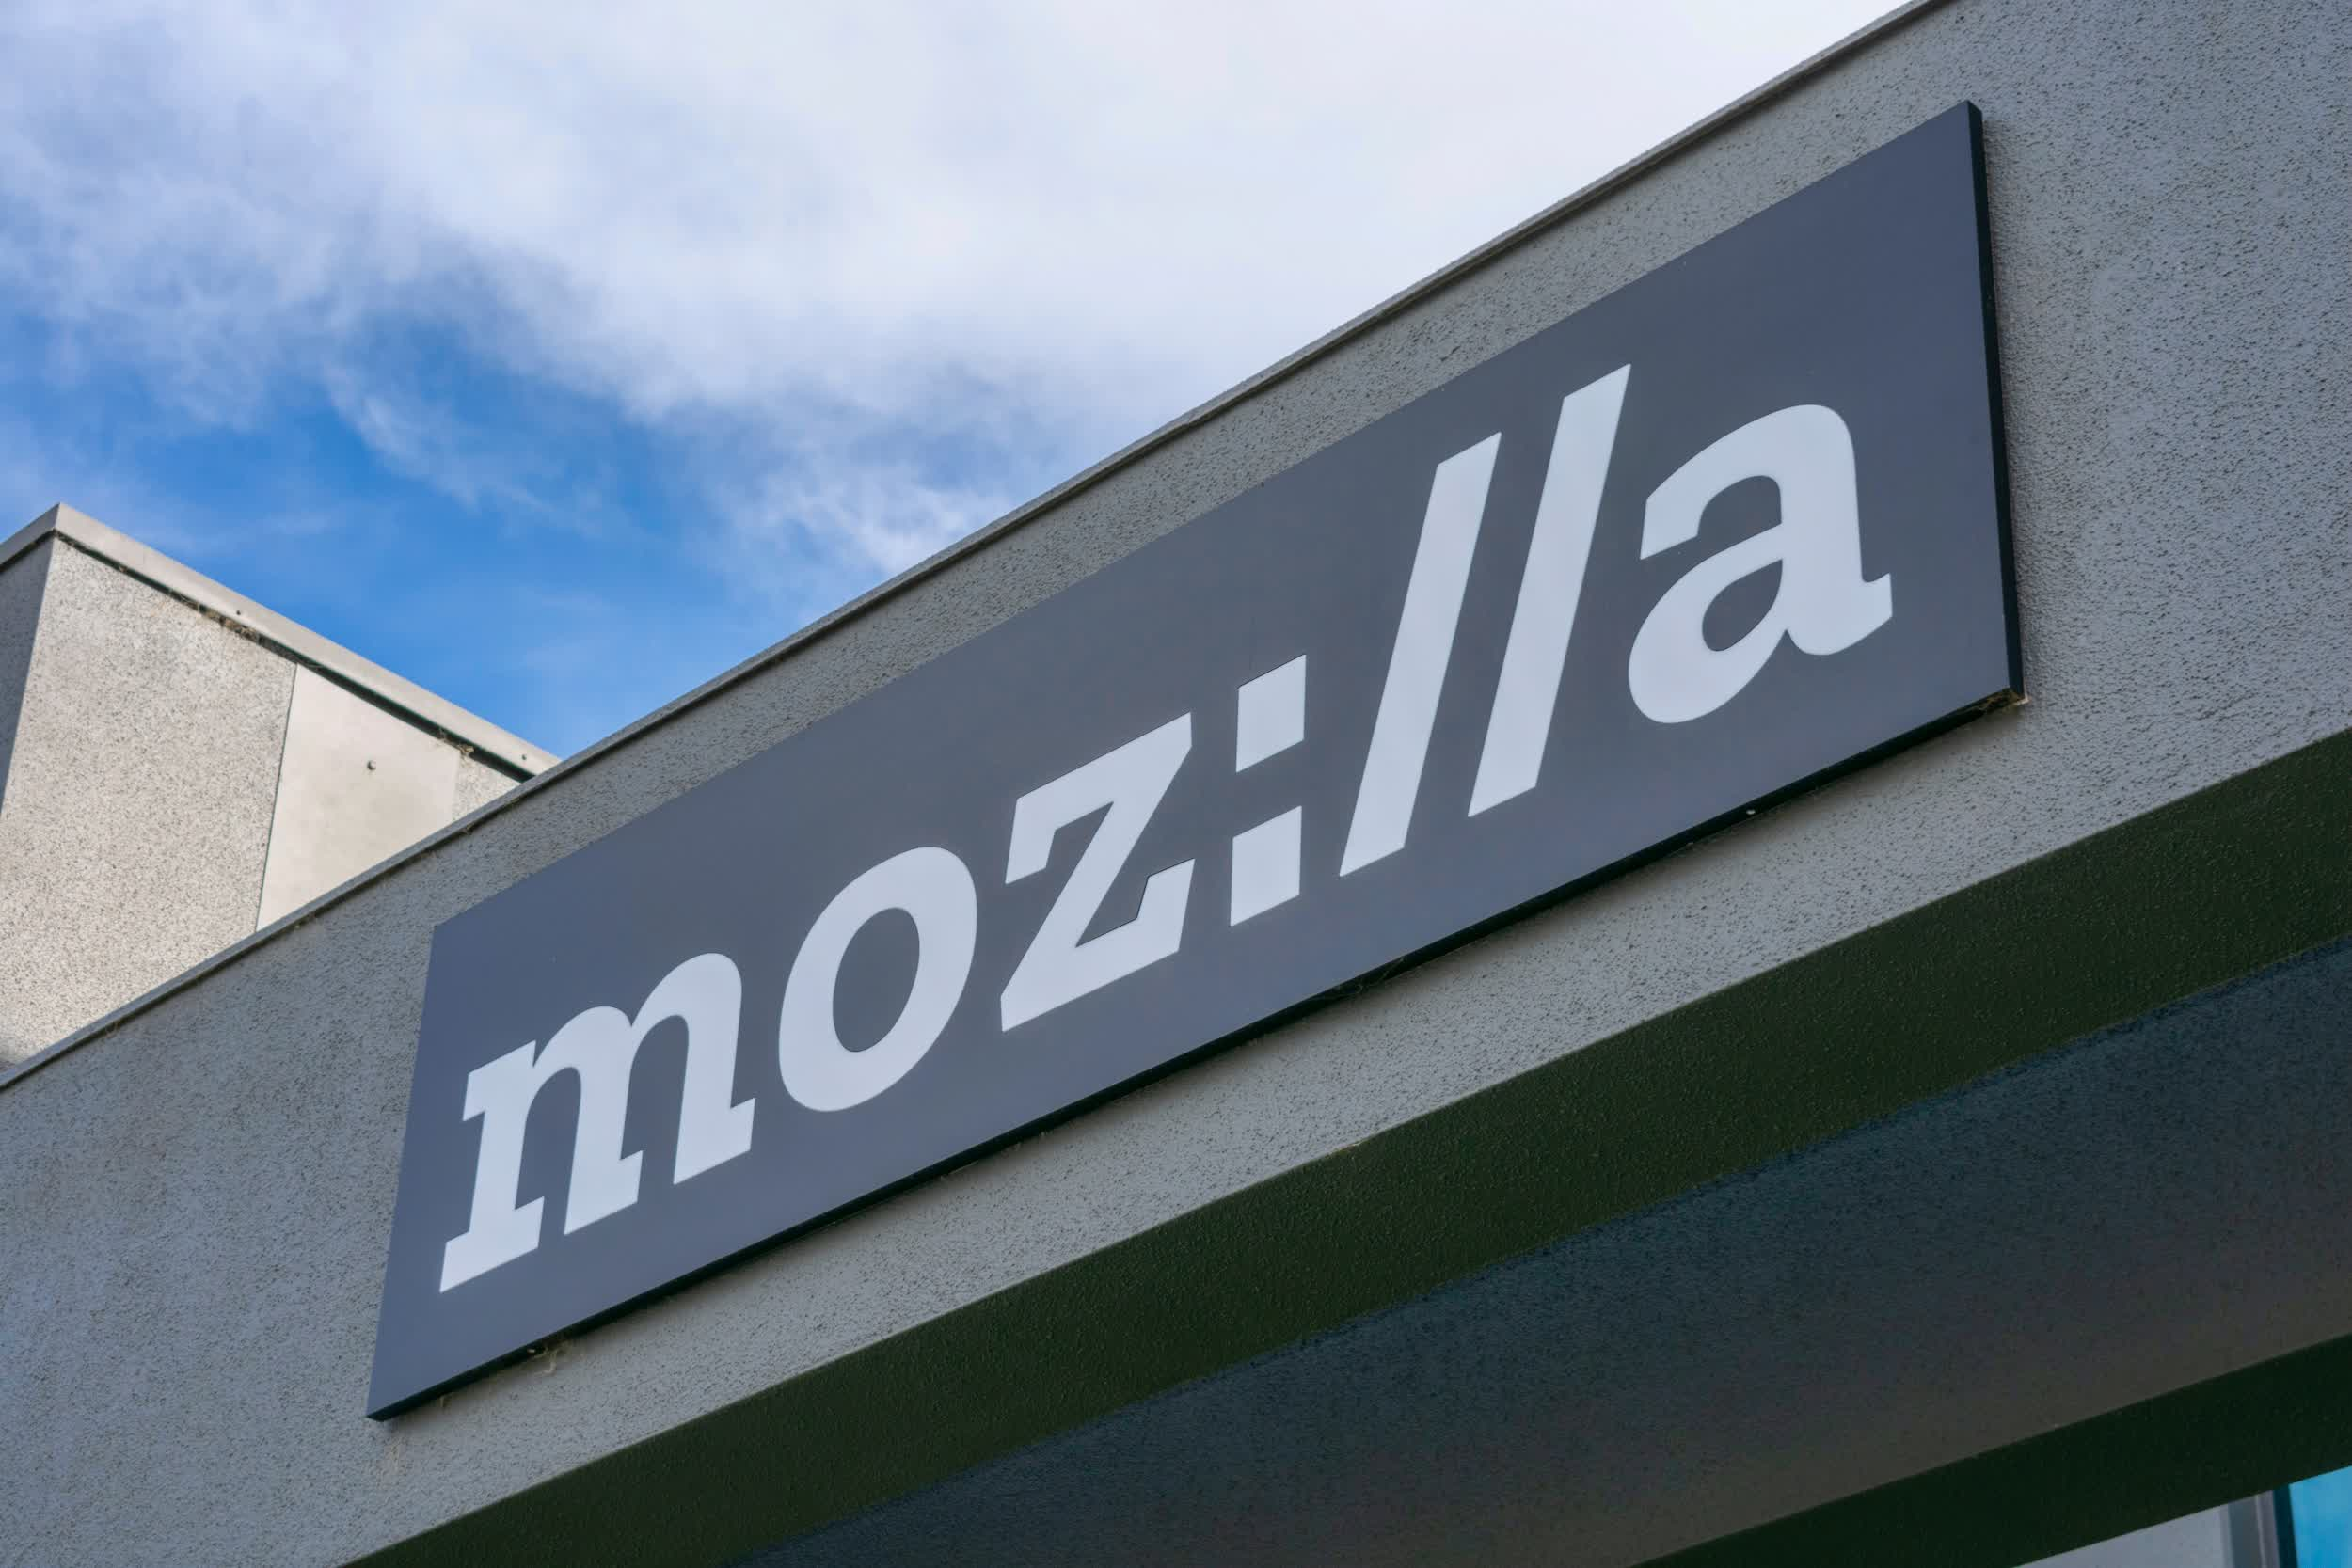 Mozilla is investigating YouTube's curious recommendation algorithms